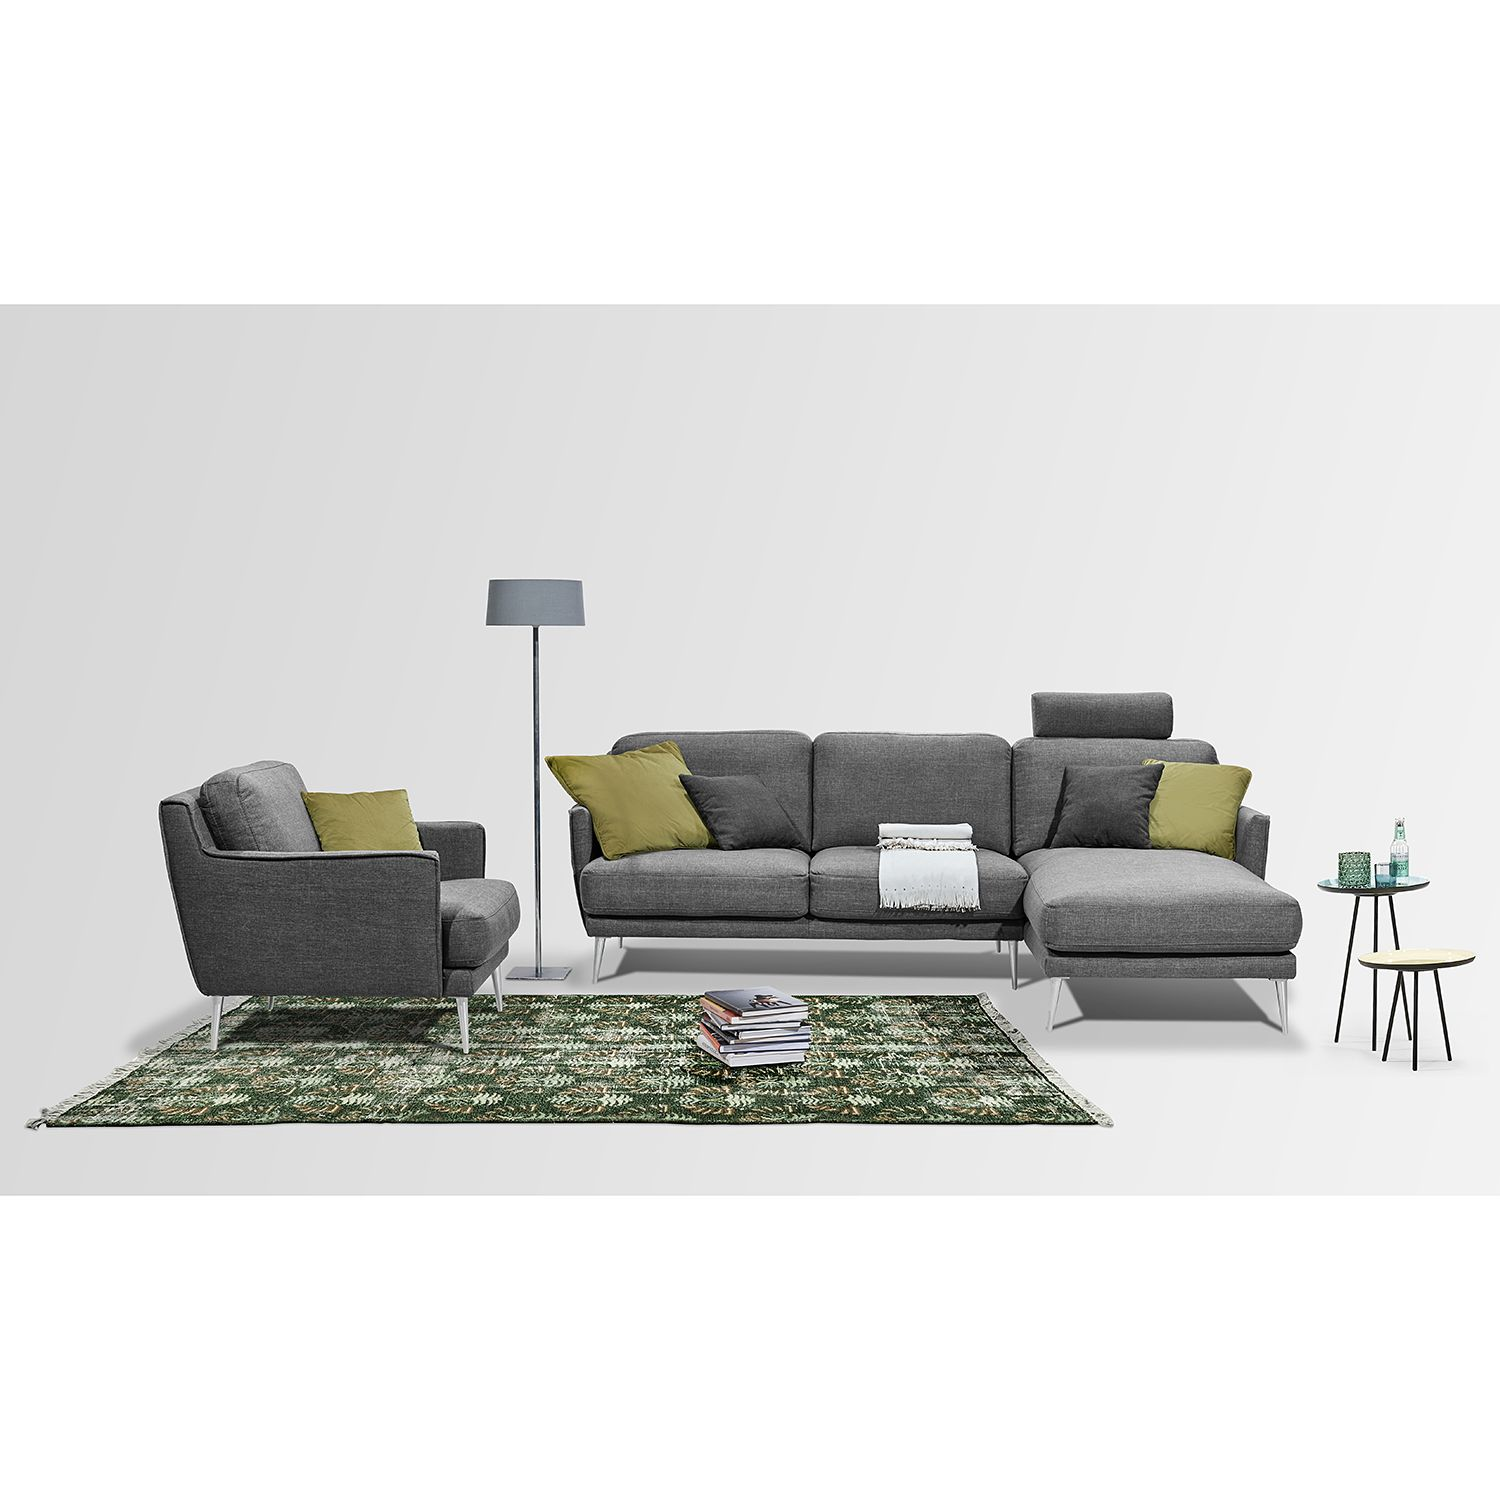 home24 Sessel Maylis Webstoff